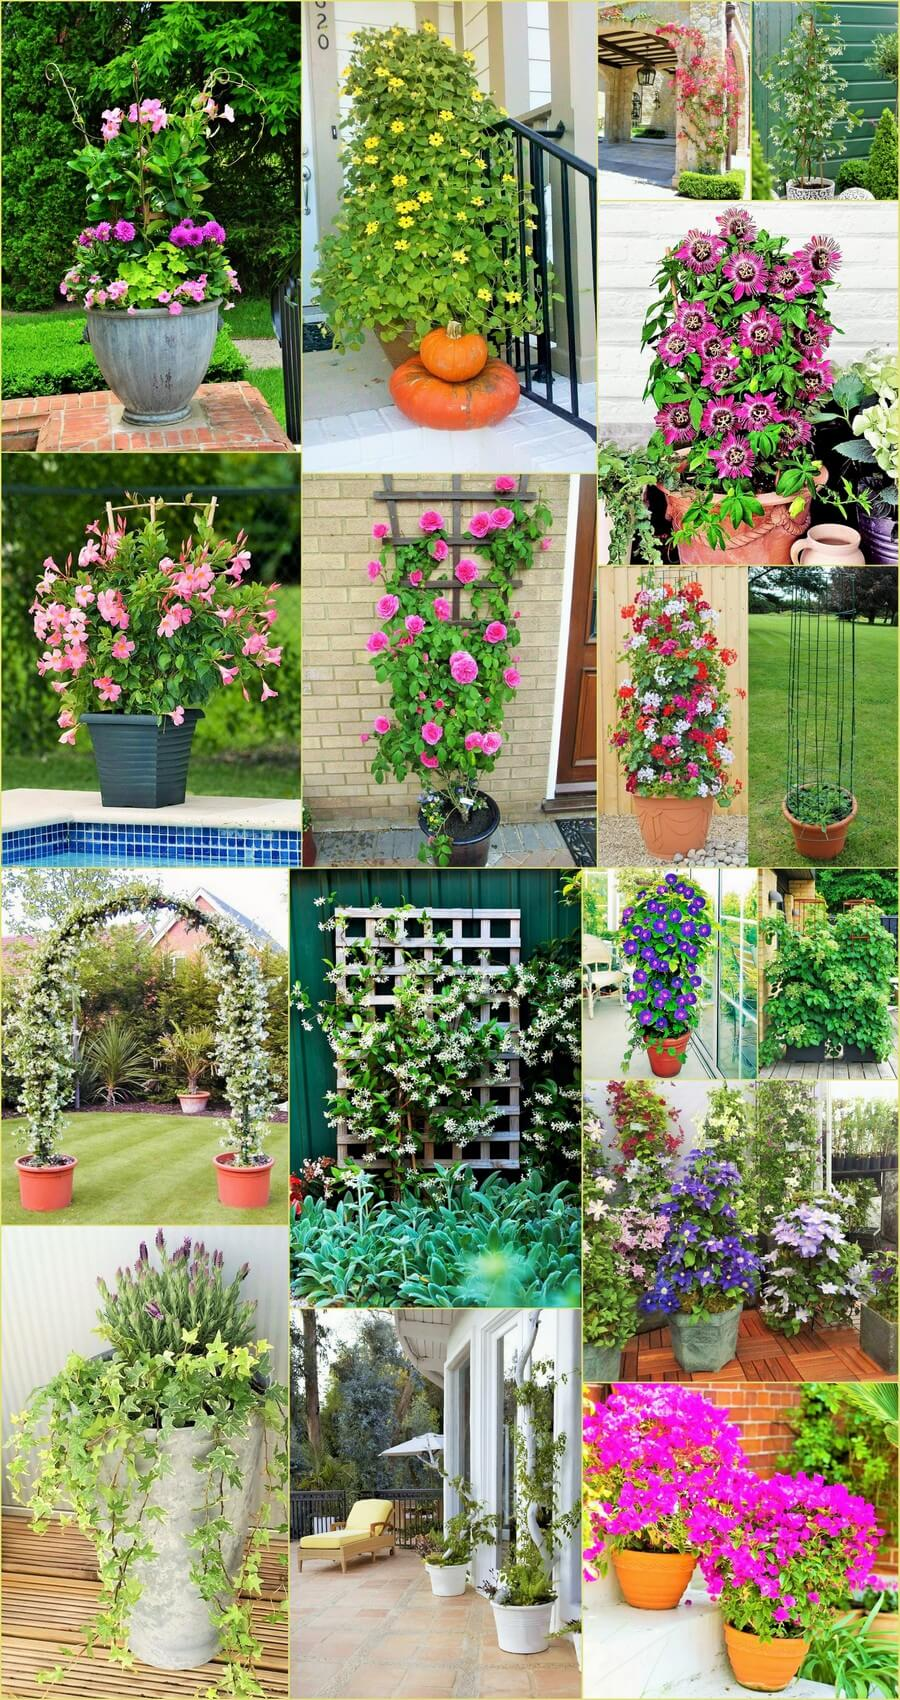 Best Garden Ideas For Gardening Lovers - 1001 Motive Ideas